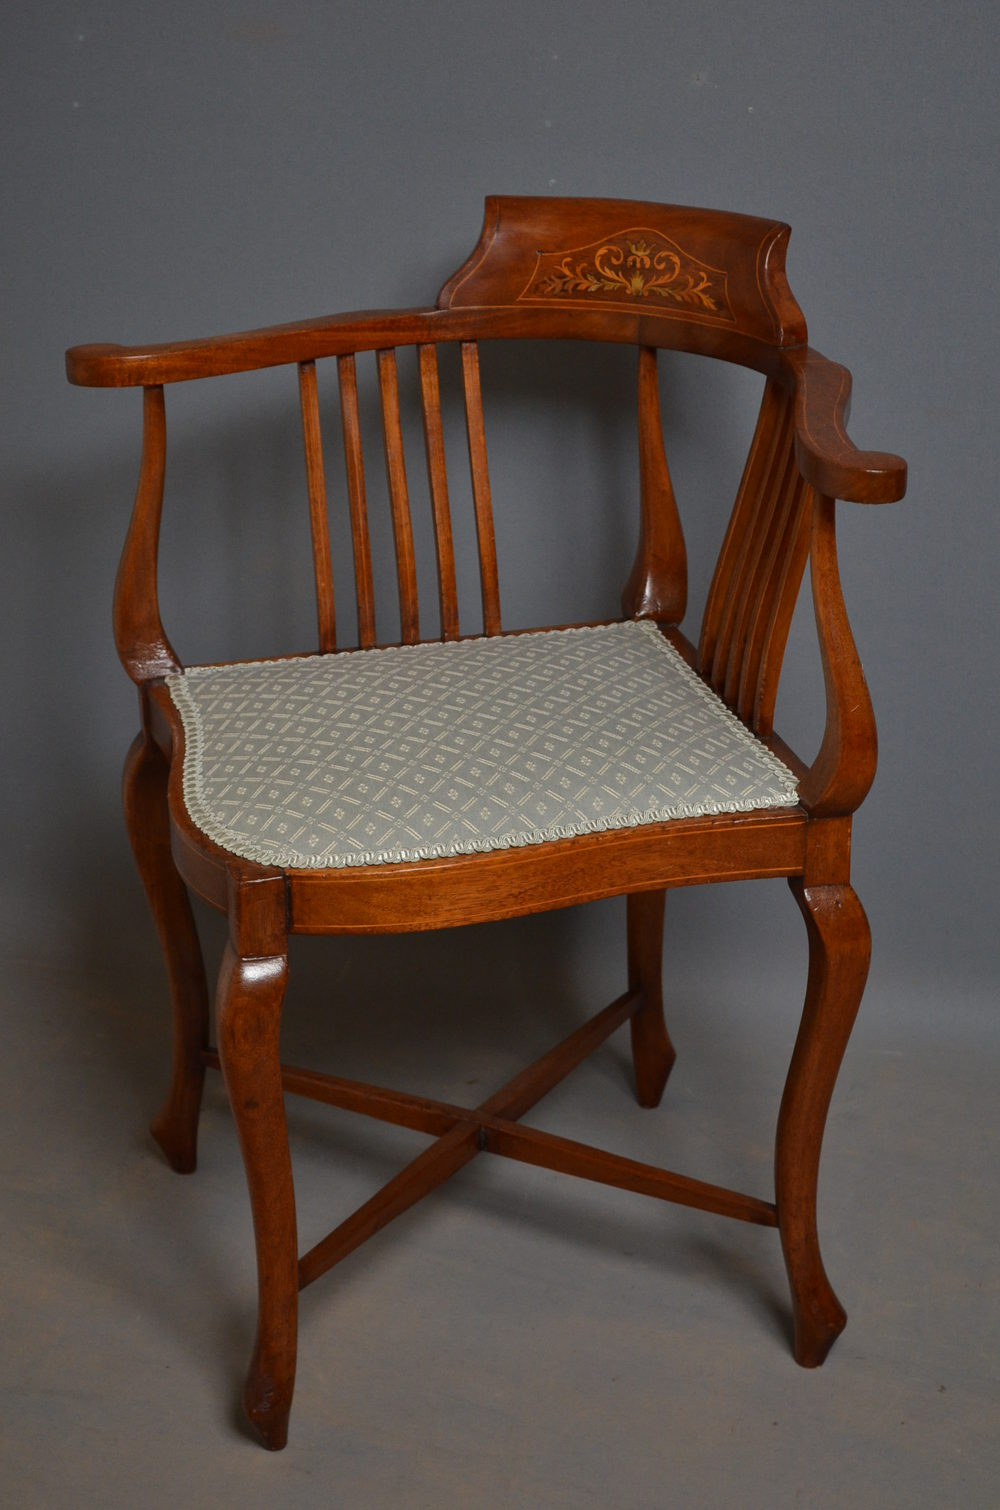 Edwardian Corner Chair Antique Corner Chairs - Edwardian Corner Chair - Antiques Atlas